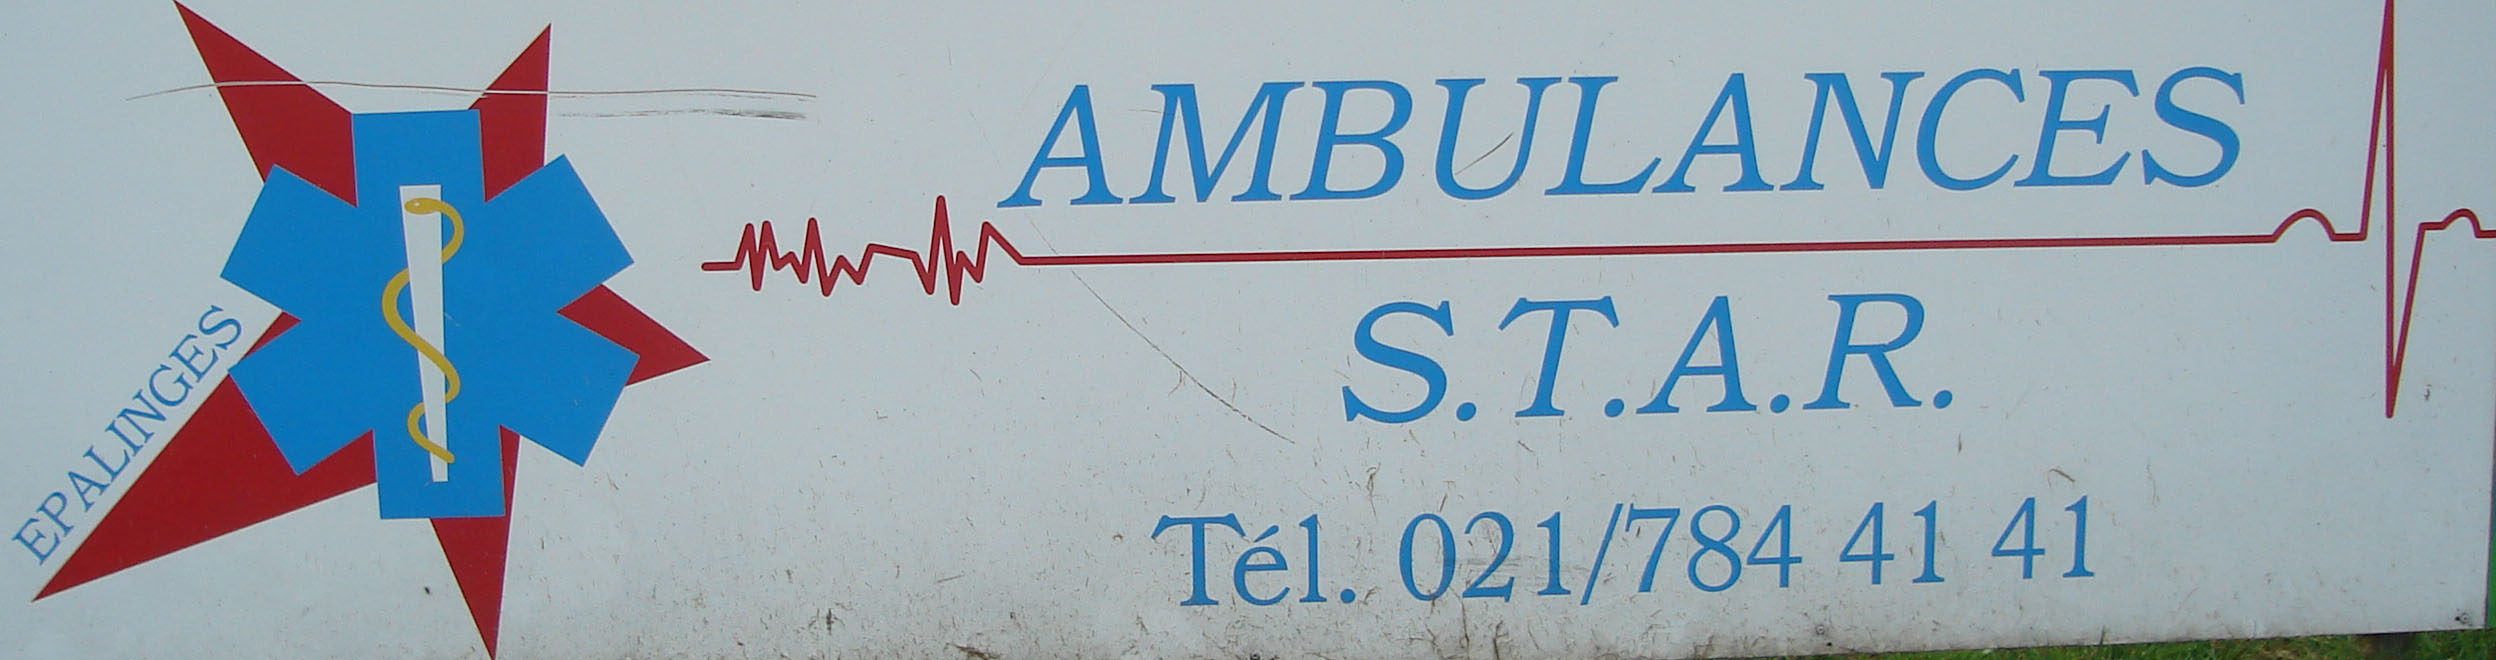 Star ambulances